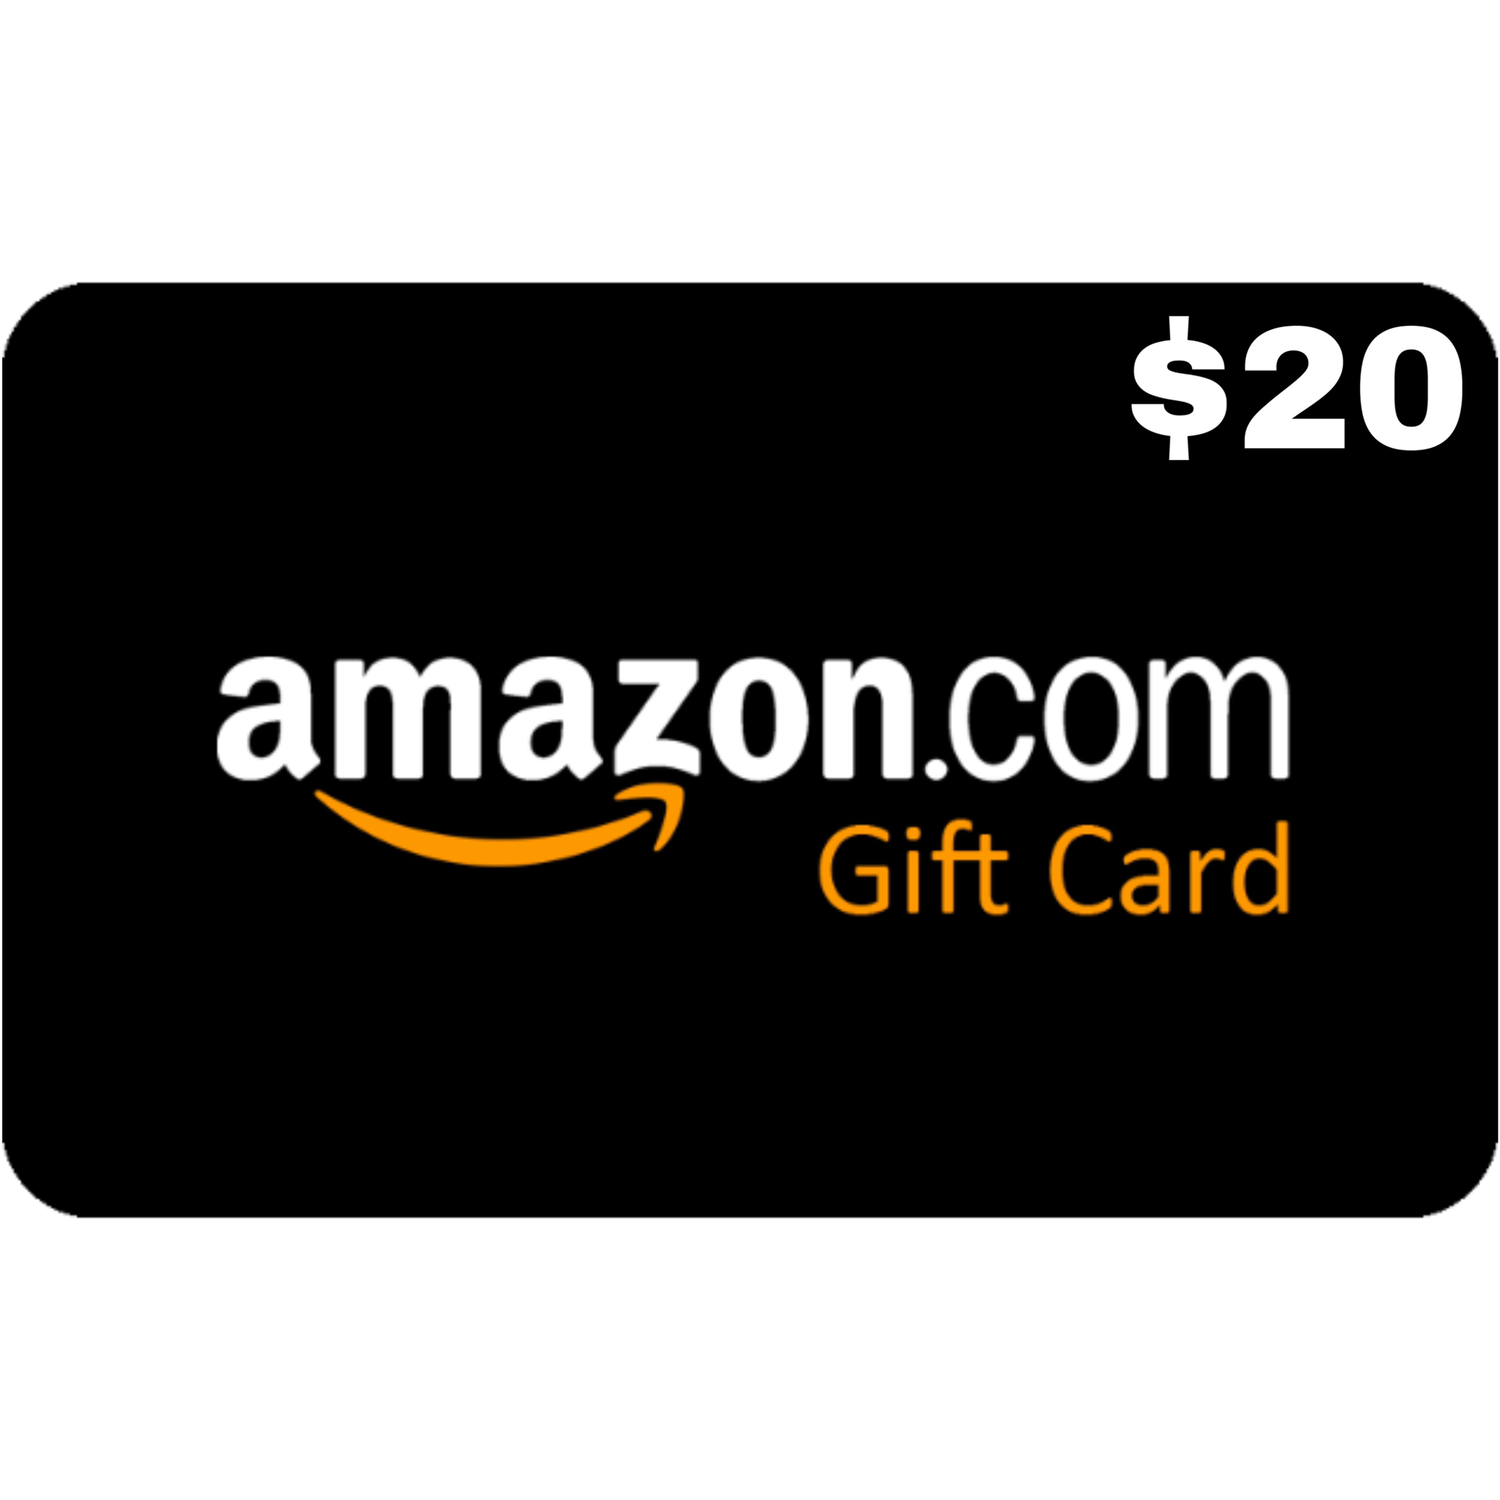 Amazon Gift Card US $20